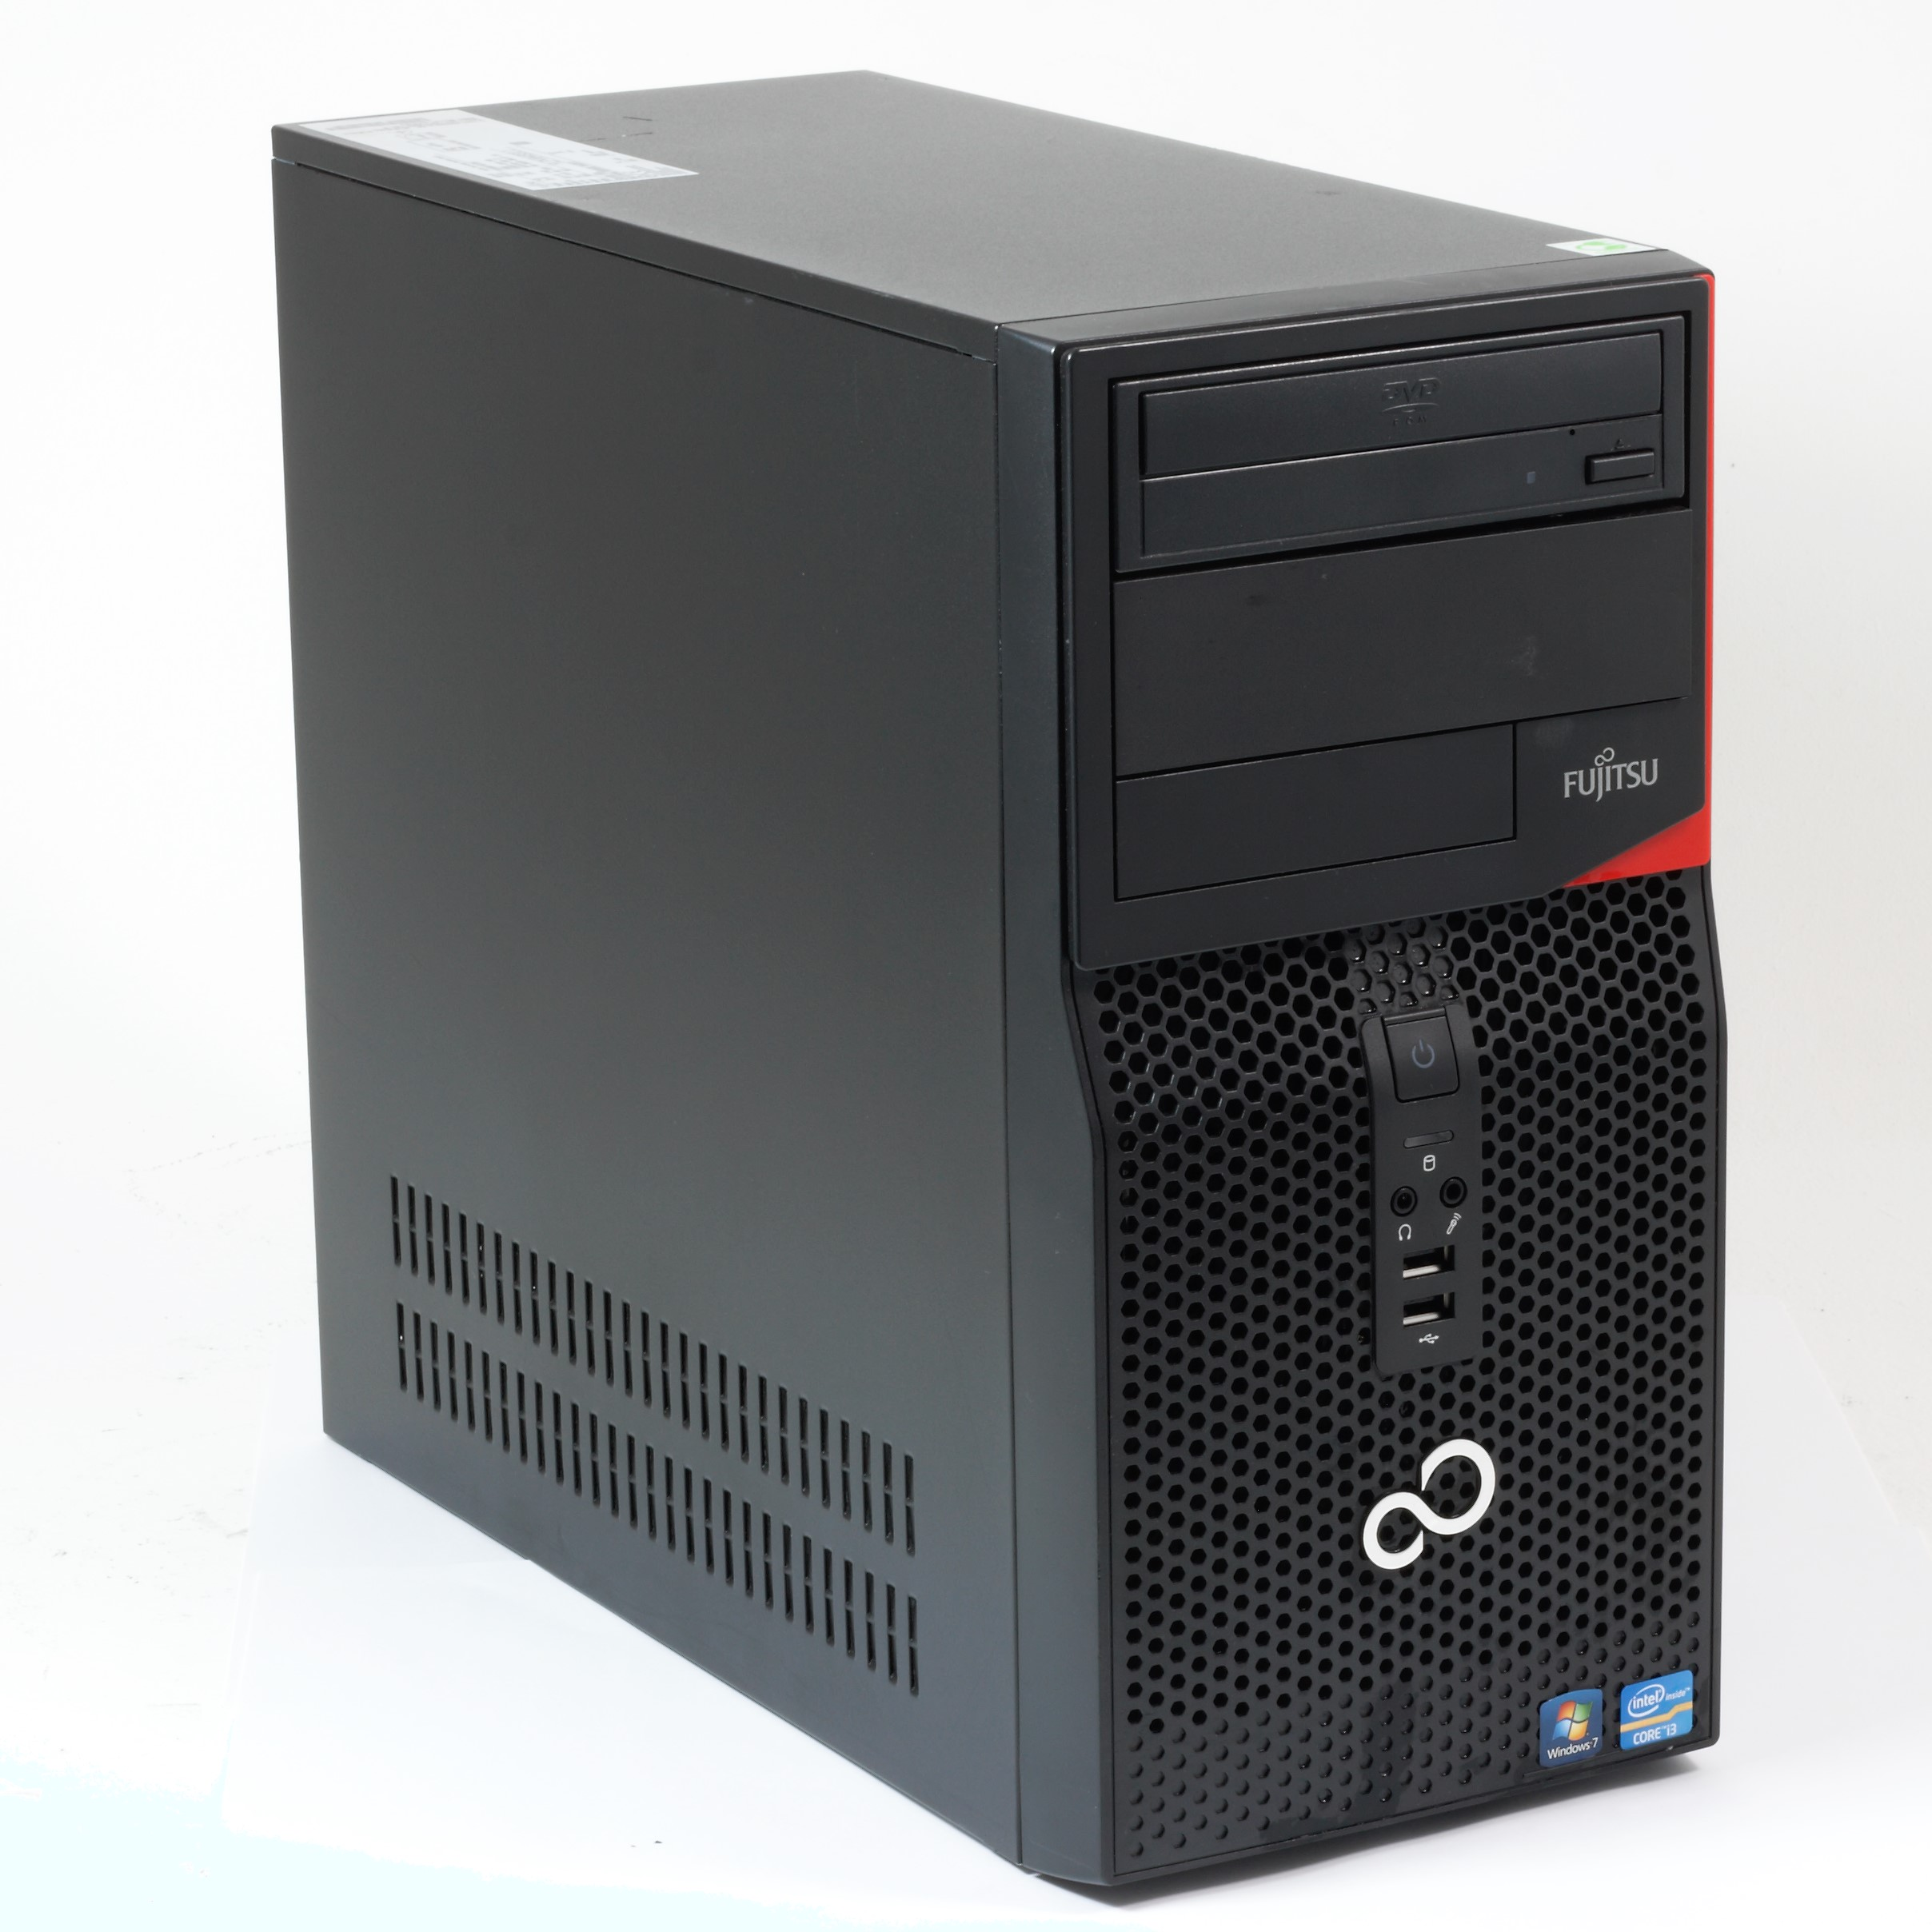 Fujitsu Esprimo P420 Minitower PC Core i3 4130 3,4GHz 500GB HDD 4GB RAM DVD-ROM